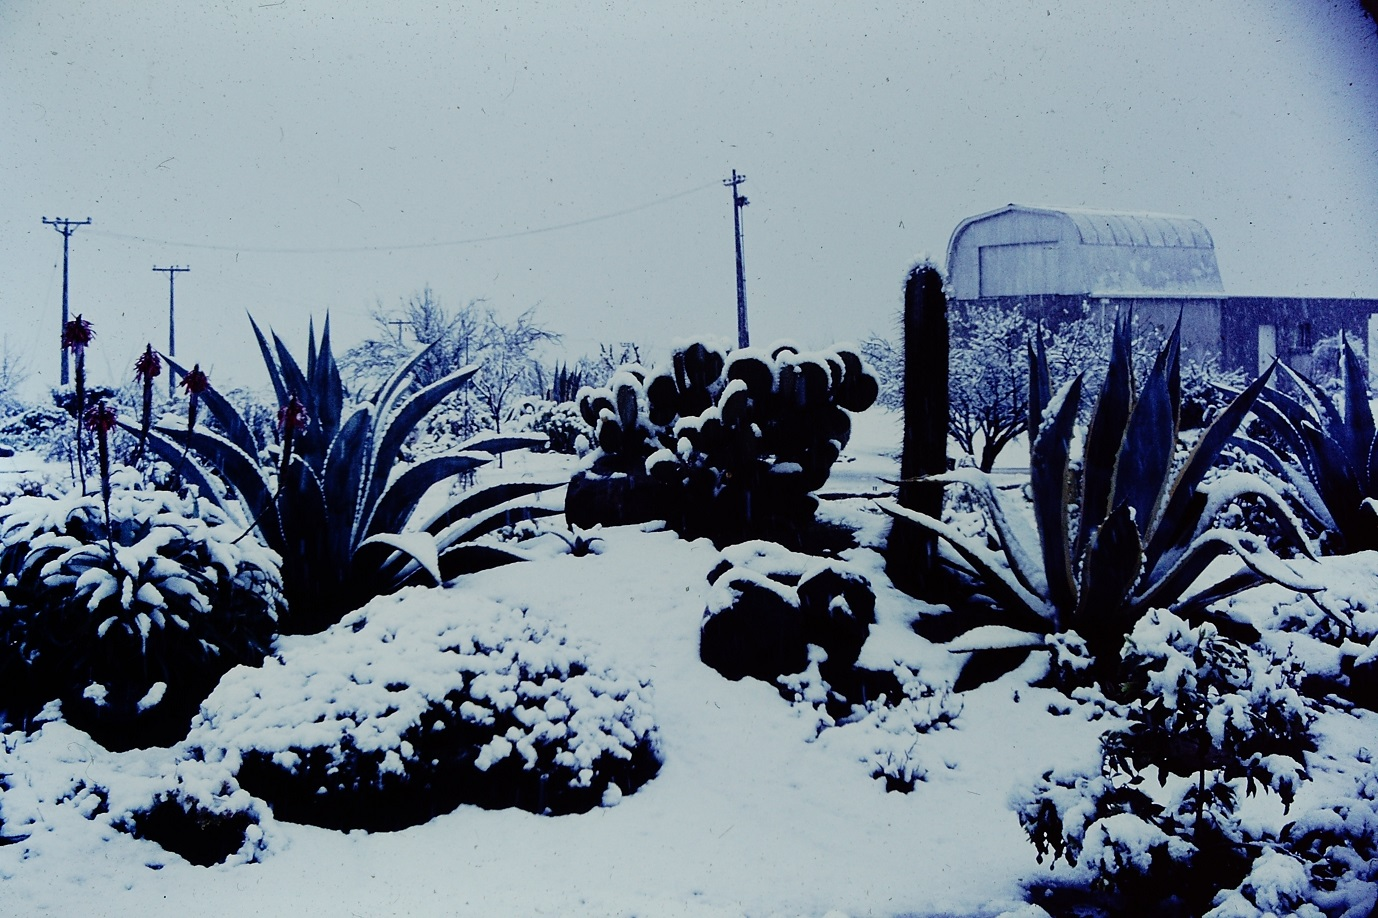 Enterreno - Fotos históricas de chile - fotos antiguas de Chile - Nevada en el Observatorio Cerro Calán en los 60s